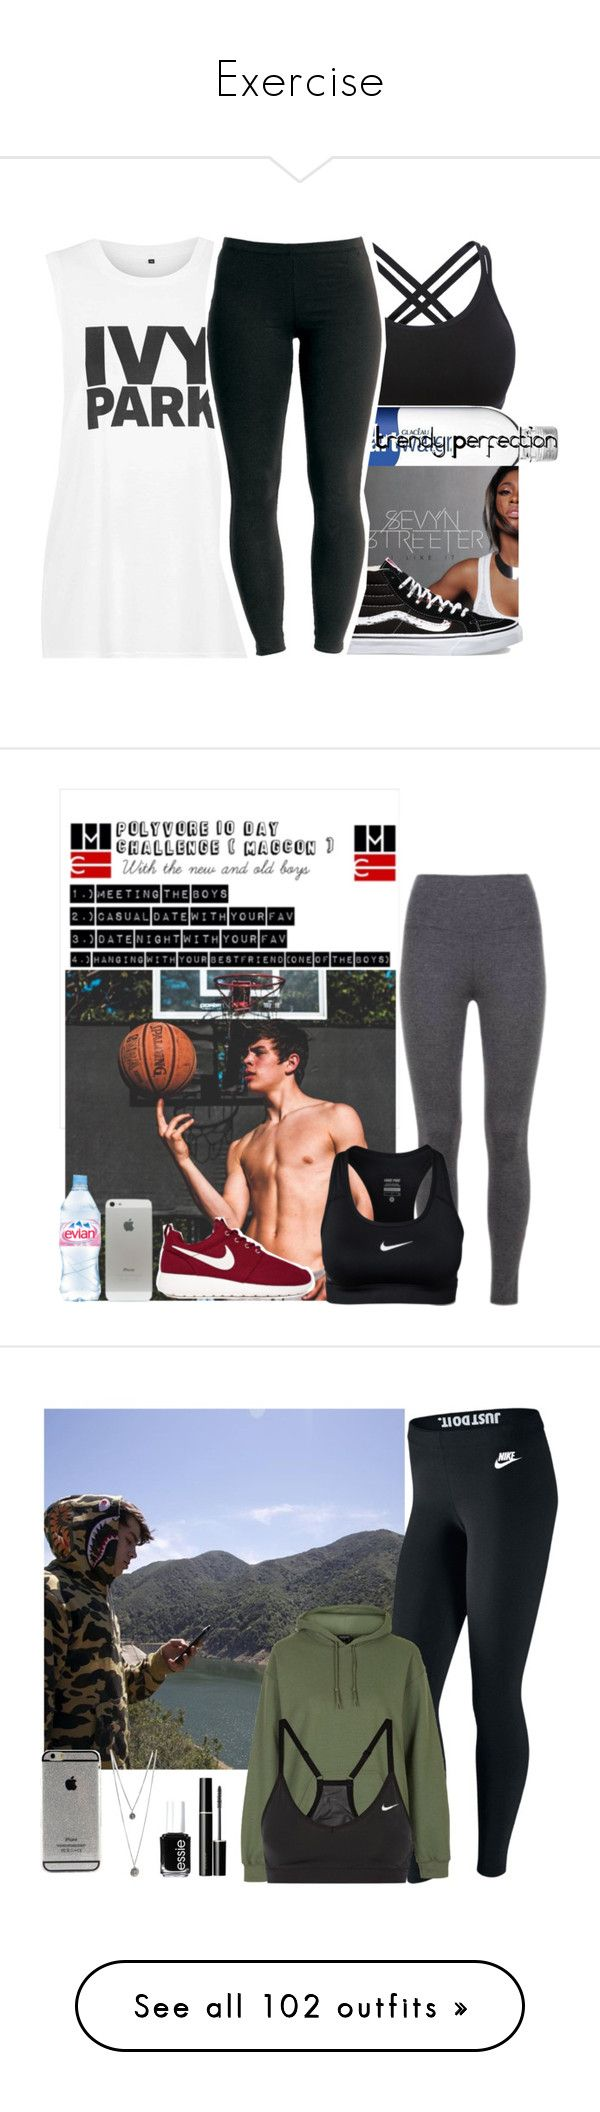 """""""Exercise"""" by nala-paradise-islands ❤ liked on Polyvore featuring Topshop, Vans, Joe Browns, NIKE, Evian, SUQQU, Essie, beauty, adidas and Kate Spade"""